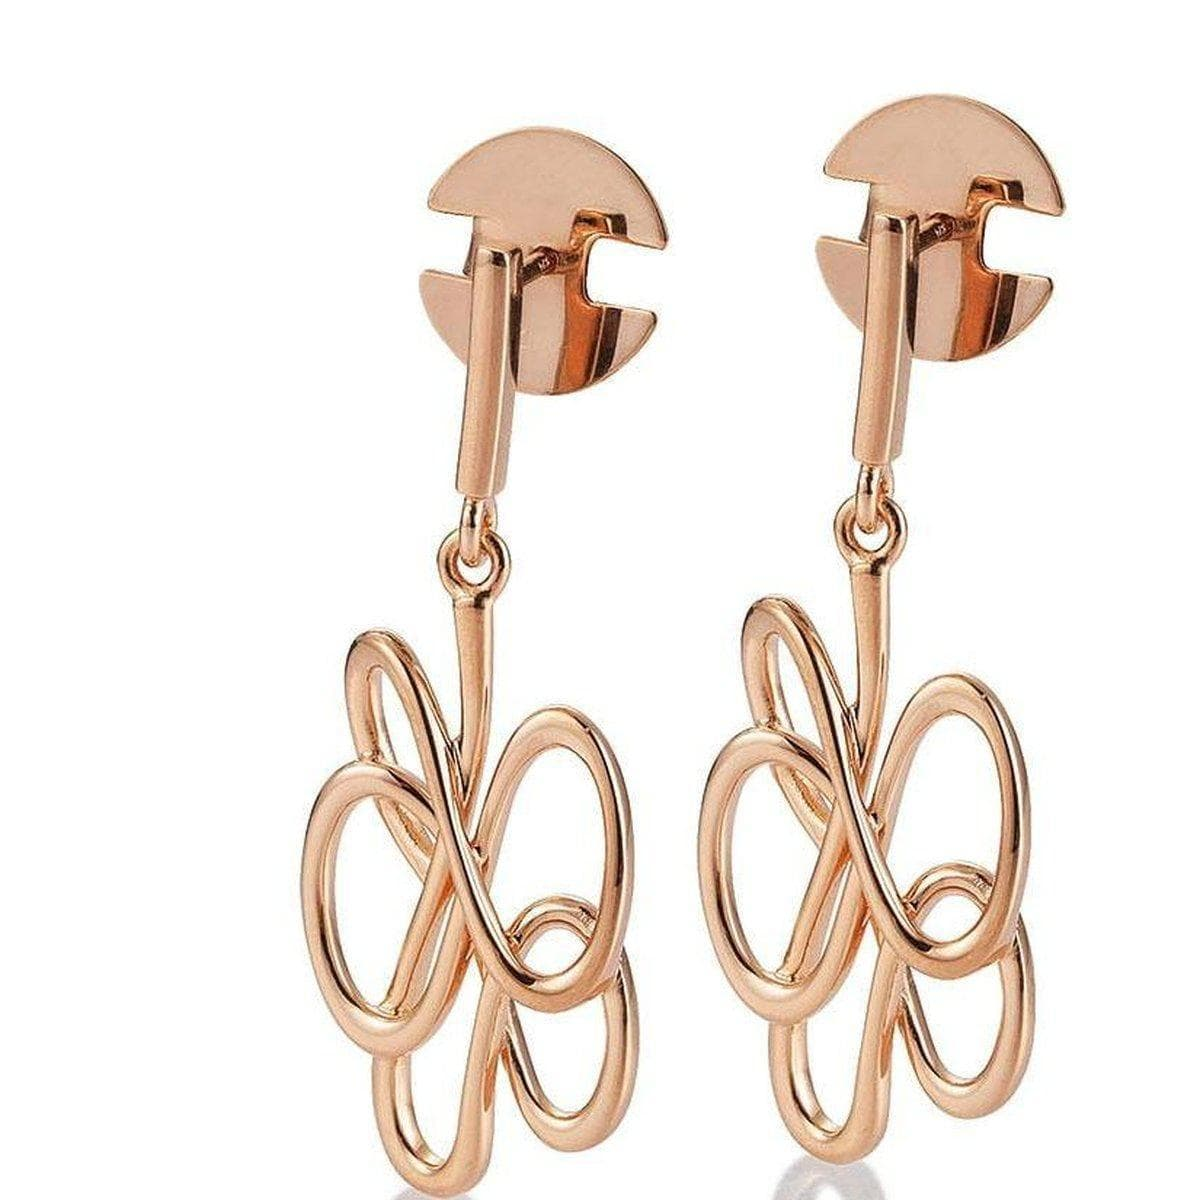 Rose Gold Plated Sterling Silver Earrings - 14/02626 - Breuning